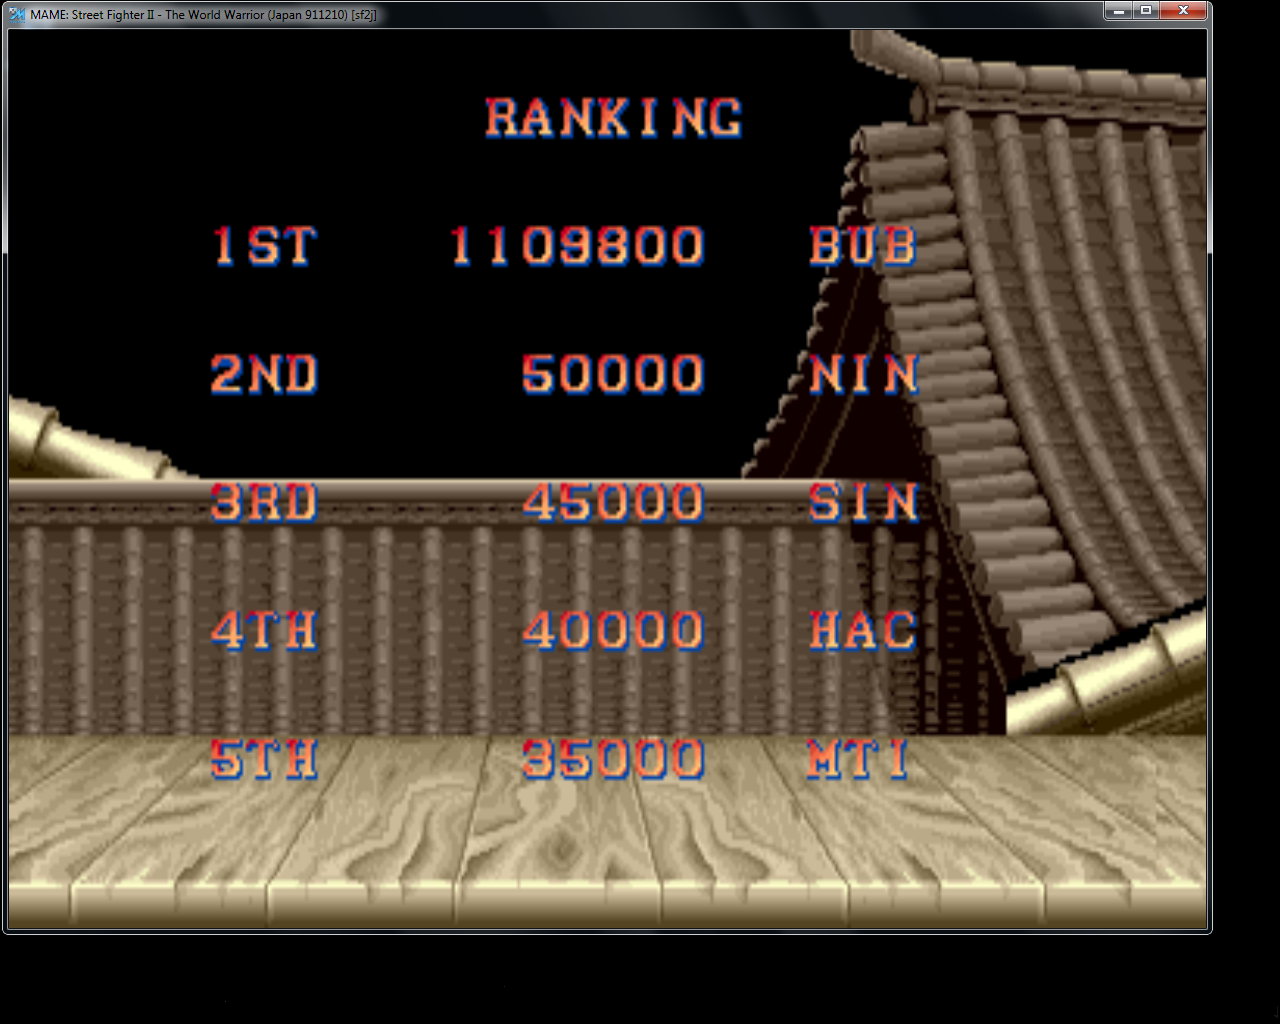 bubufubu: Street Fighter II (Arcade Emulated / M.A.M.E.) 1,109,800 points on 2015-04-08 21:53:45